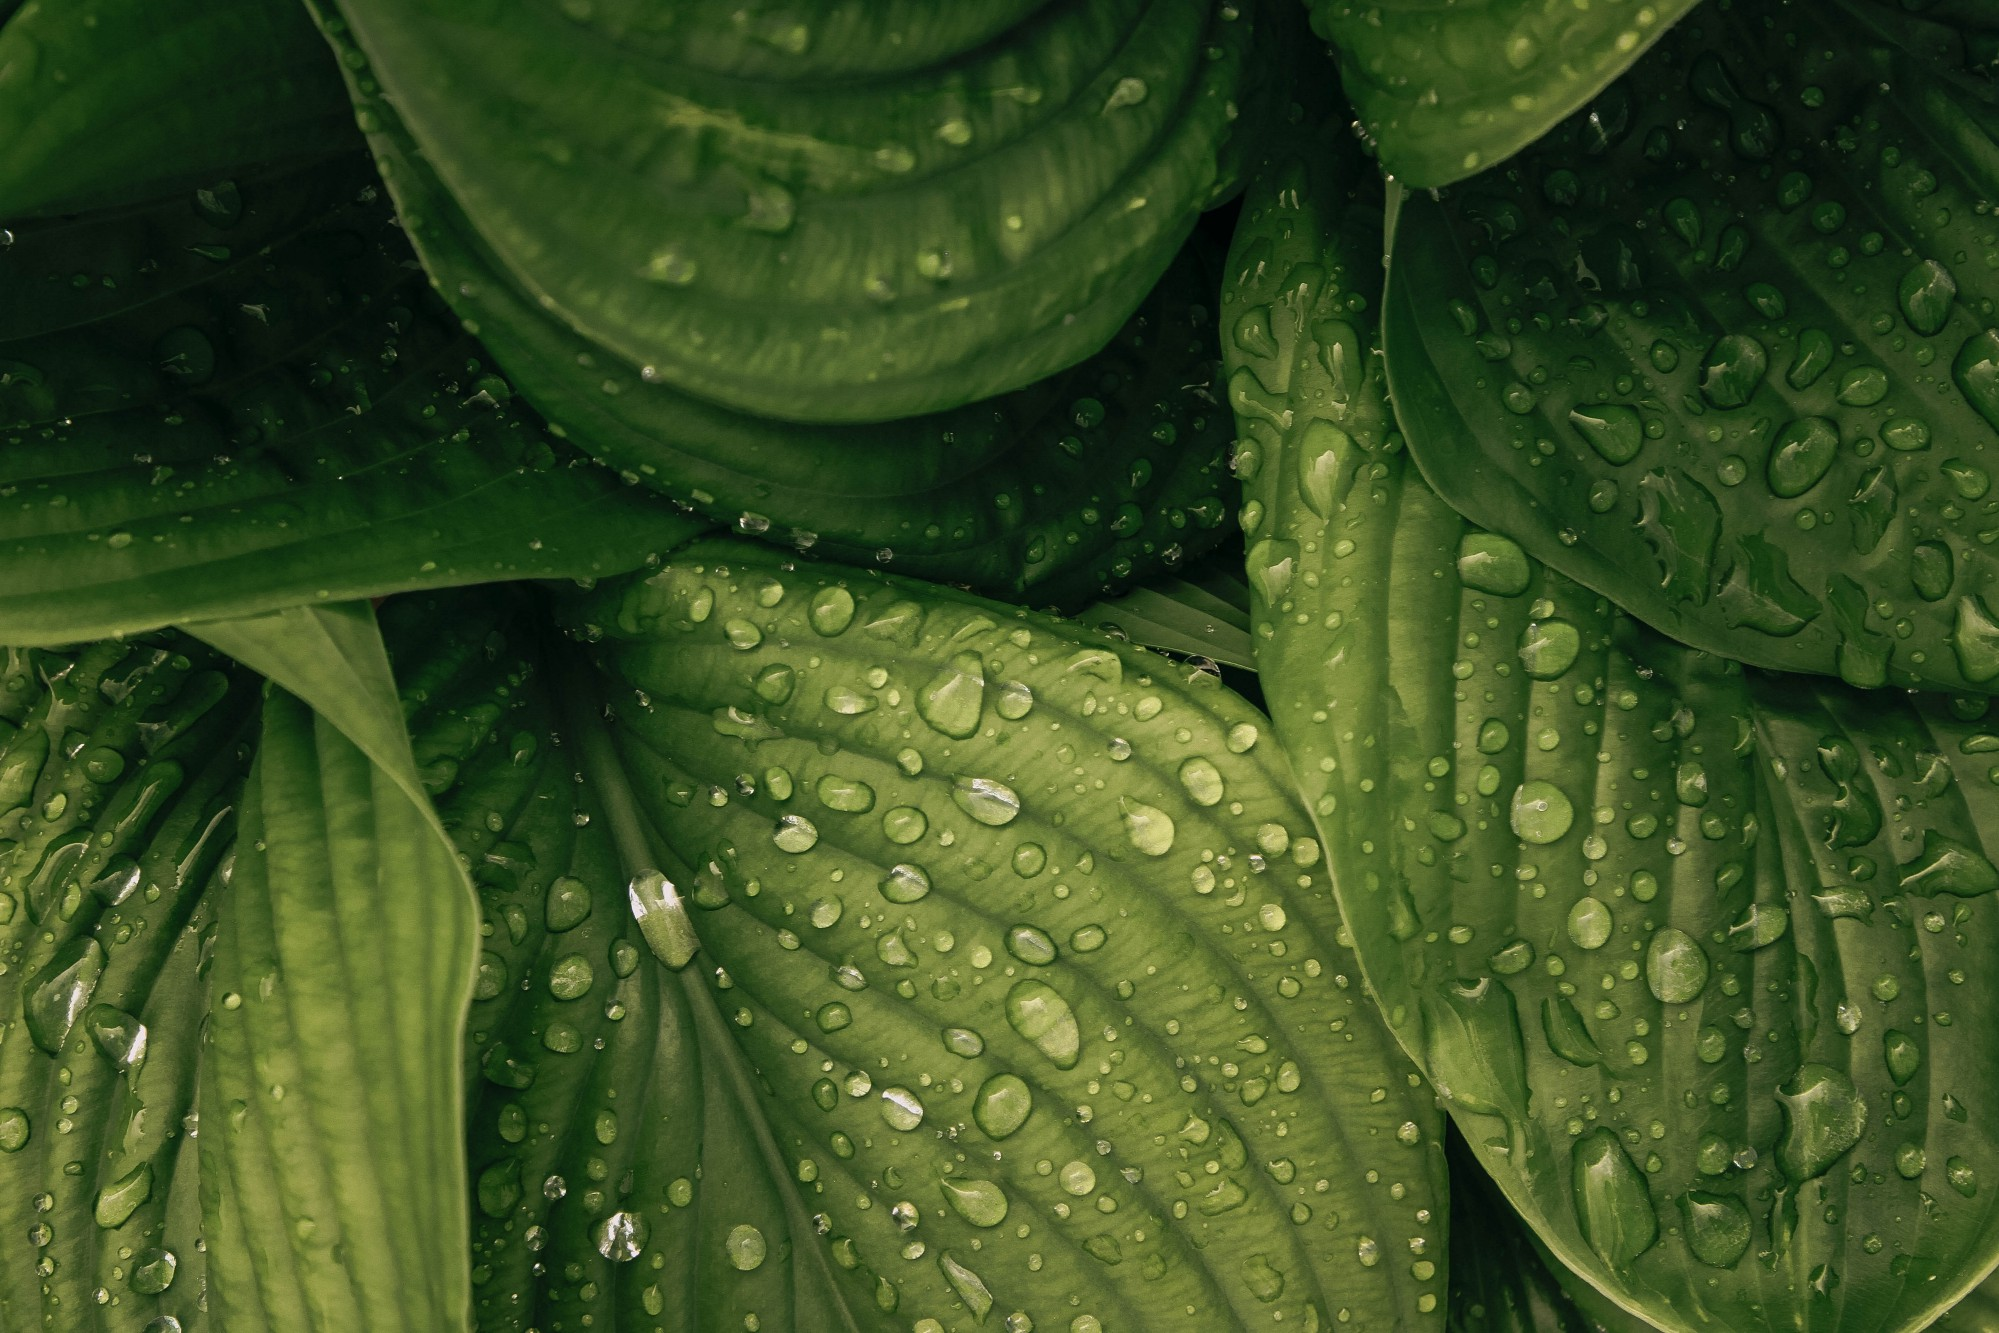 A photo of leaves by Liubov Ilchuk